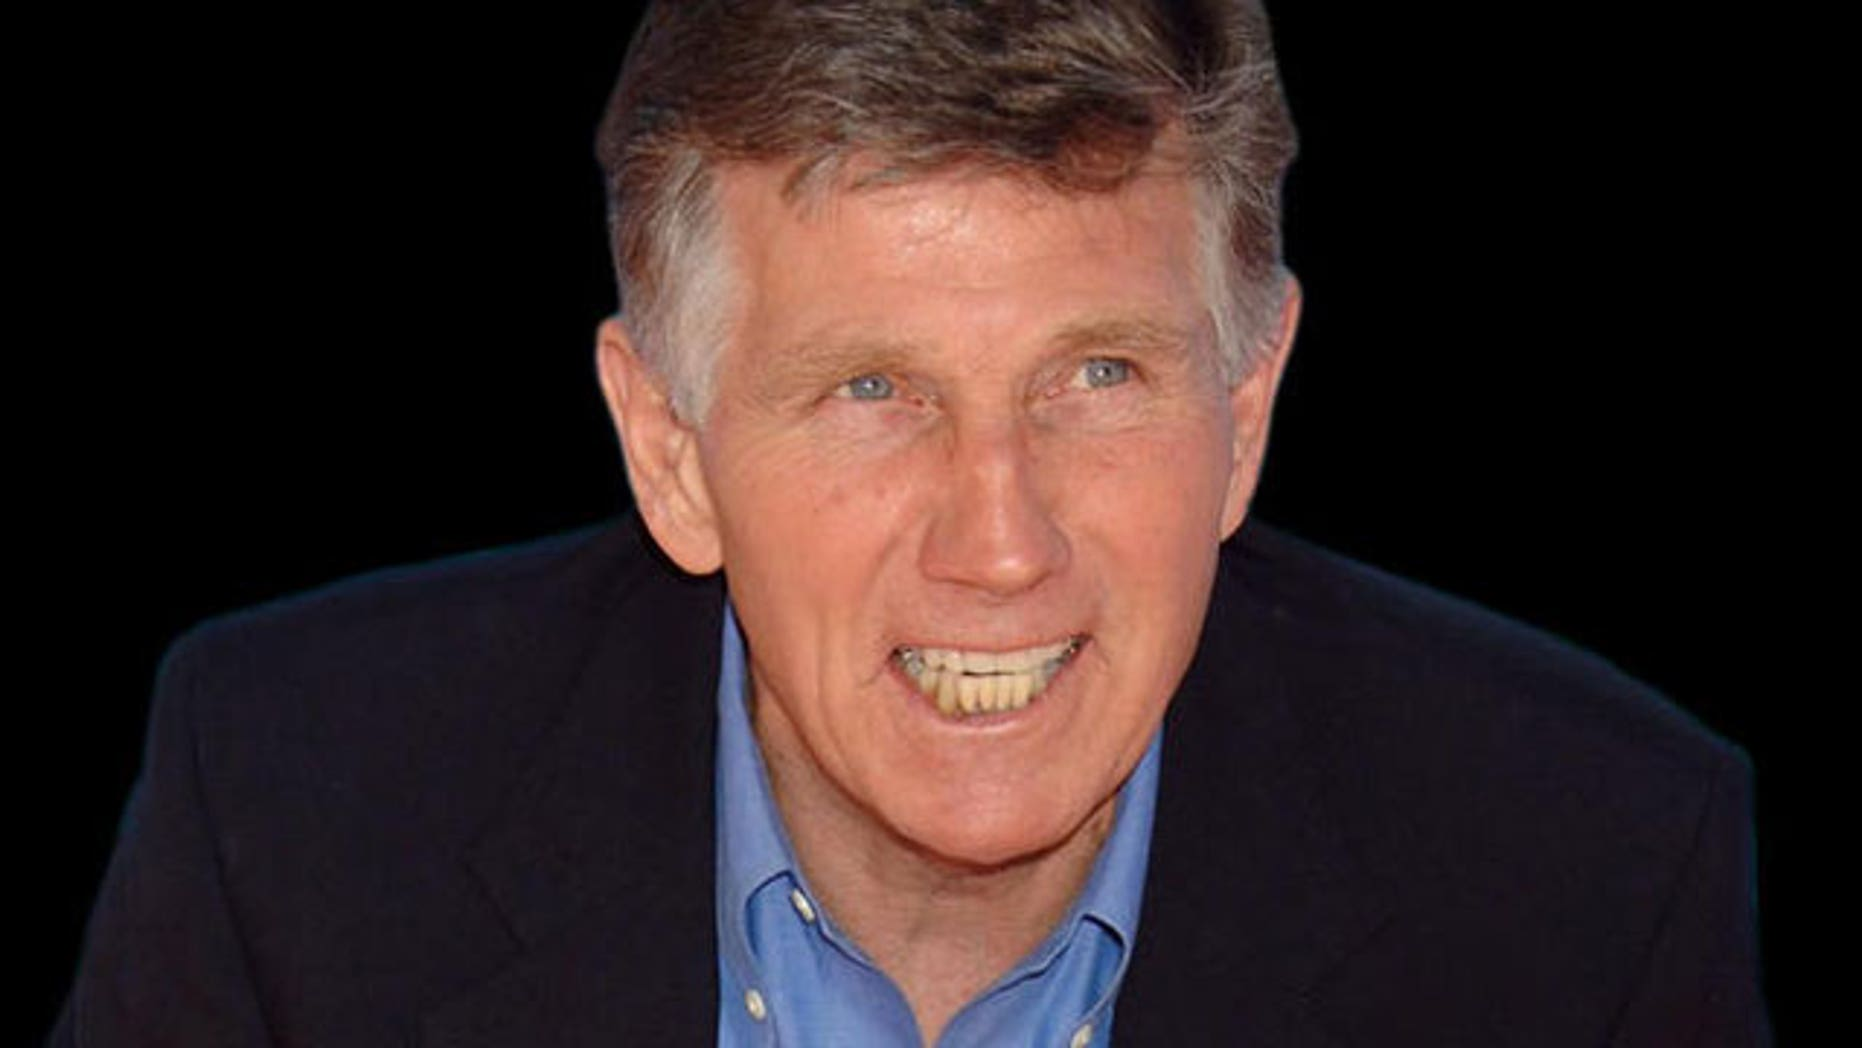 Gary Collins is the former host of Miss America.